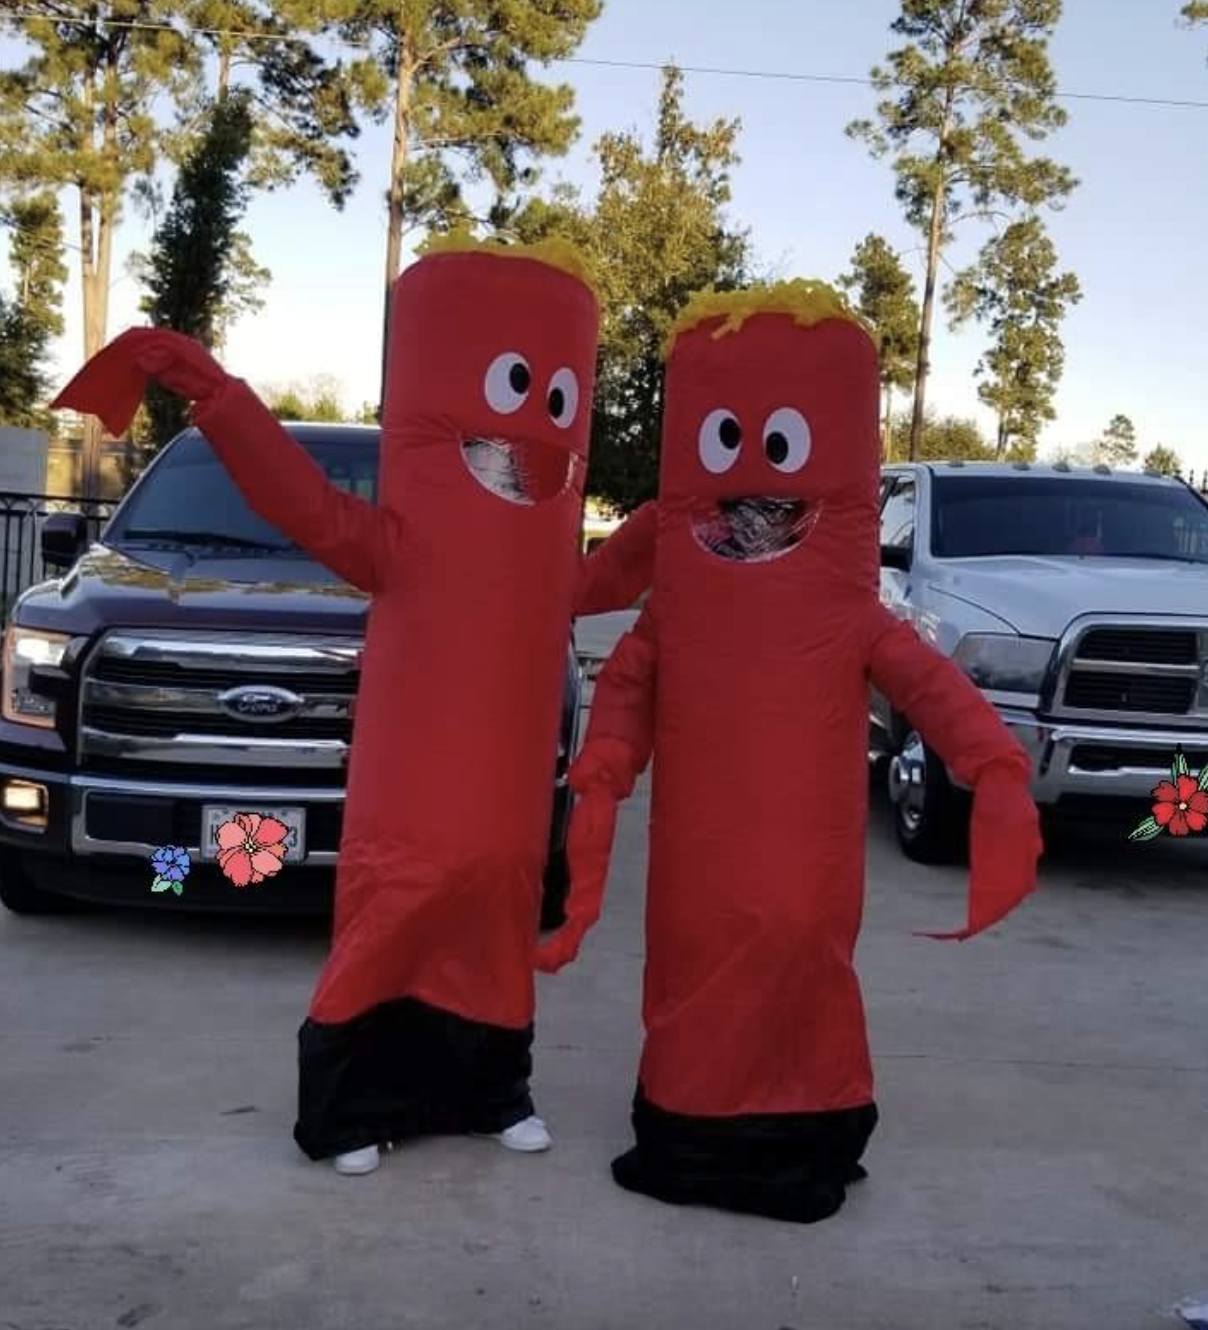 reviewers wearing the red waving arm costume